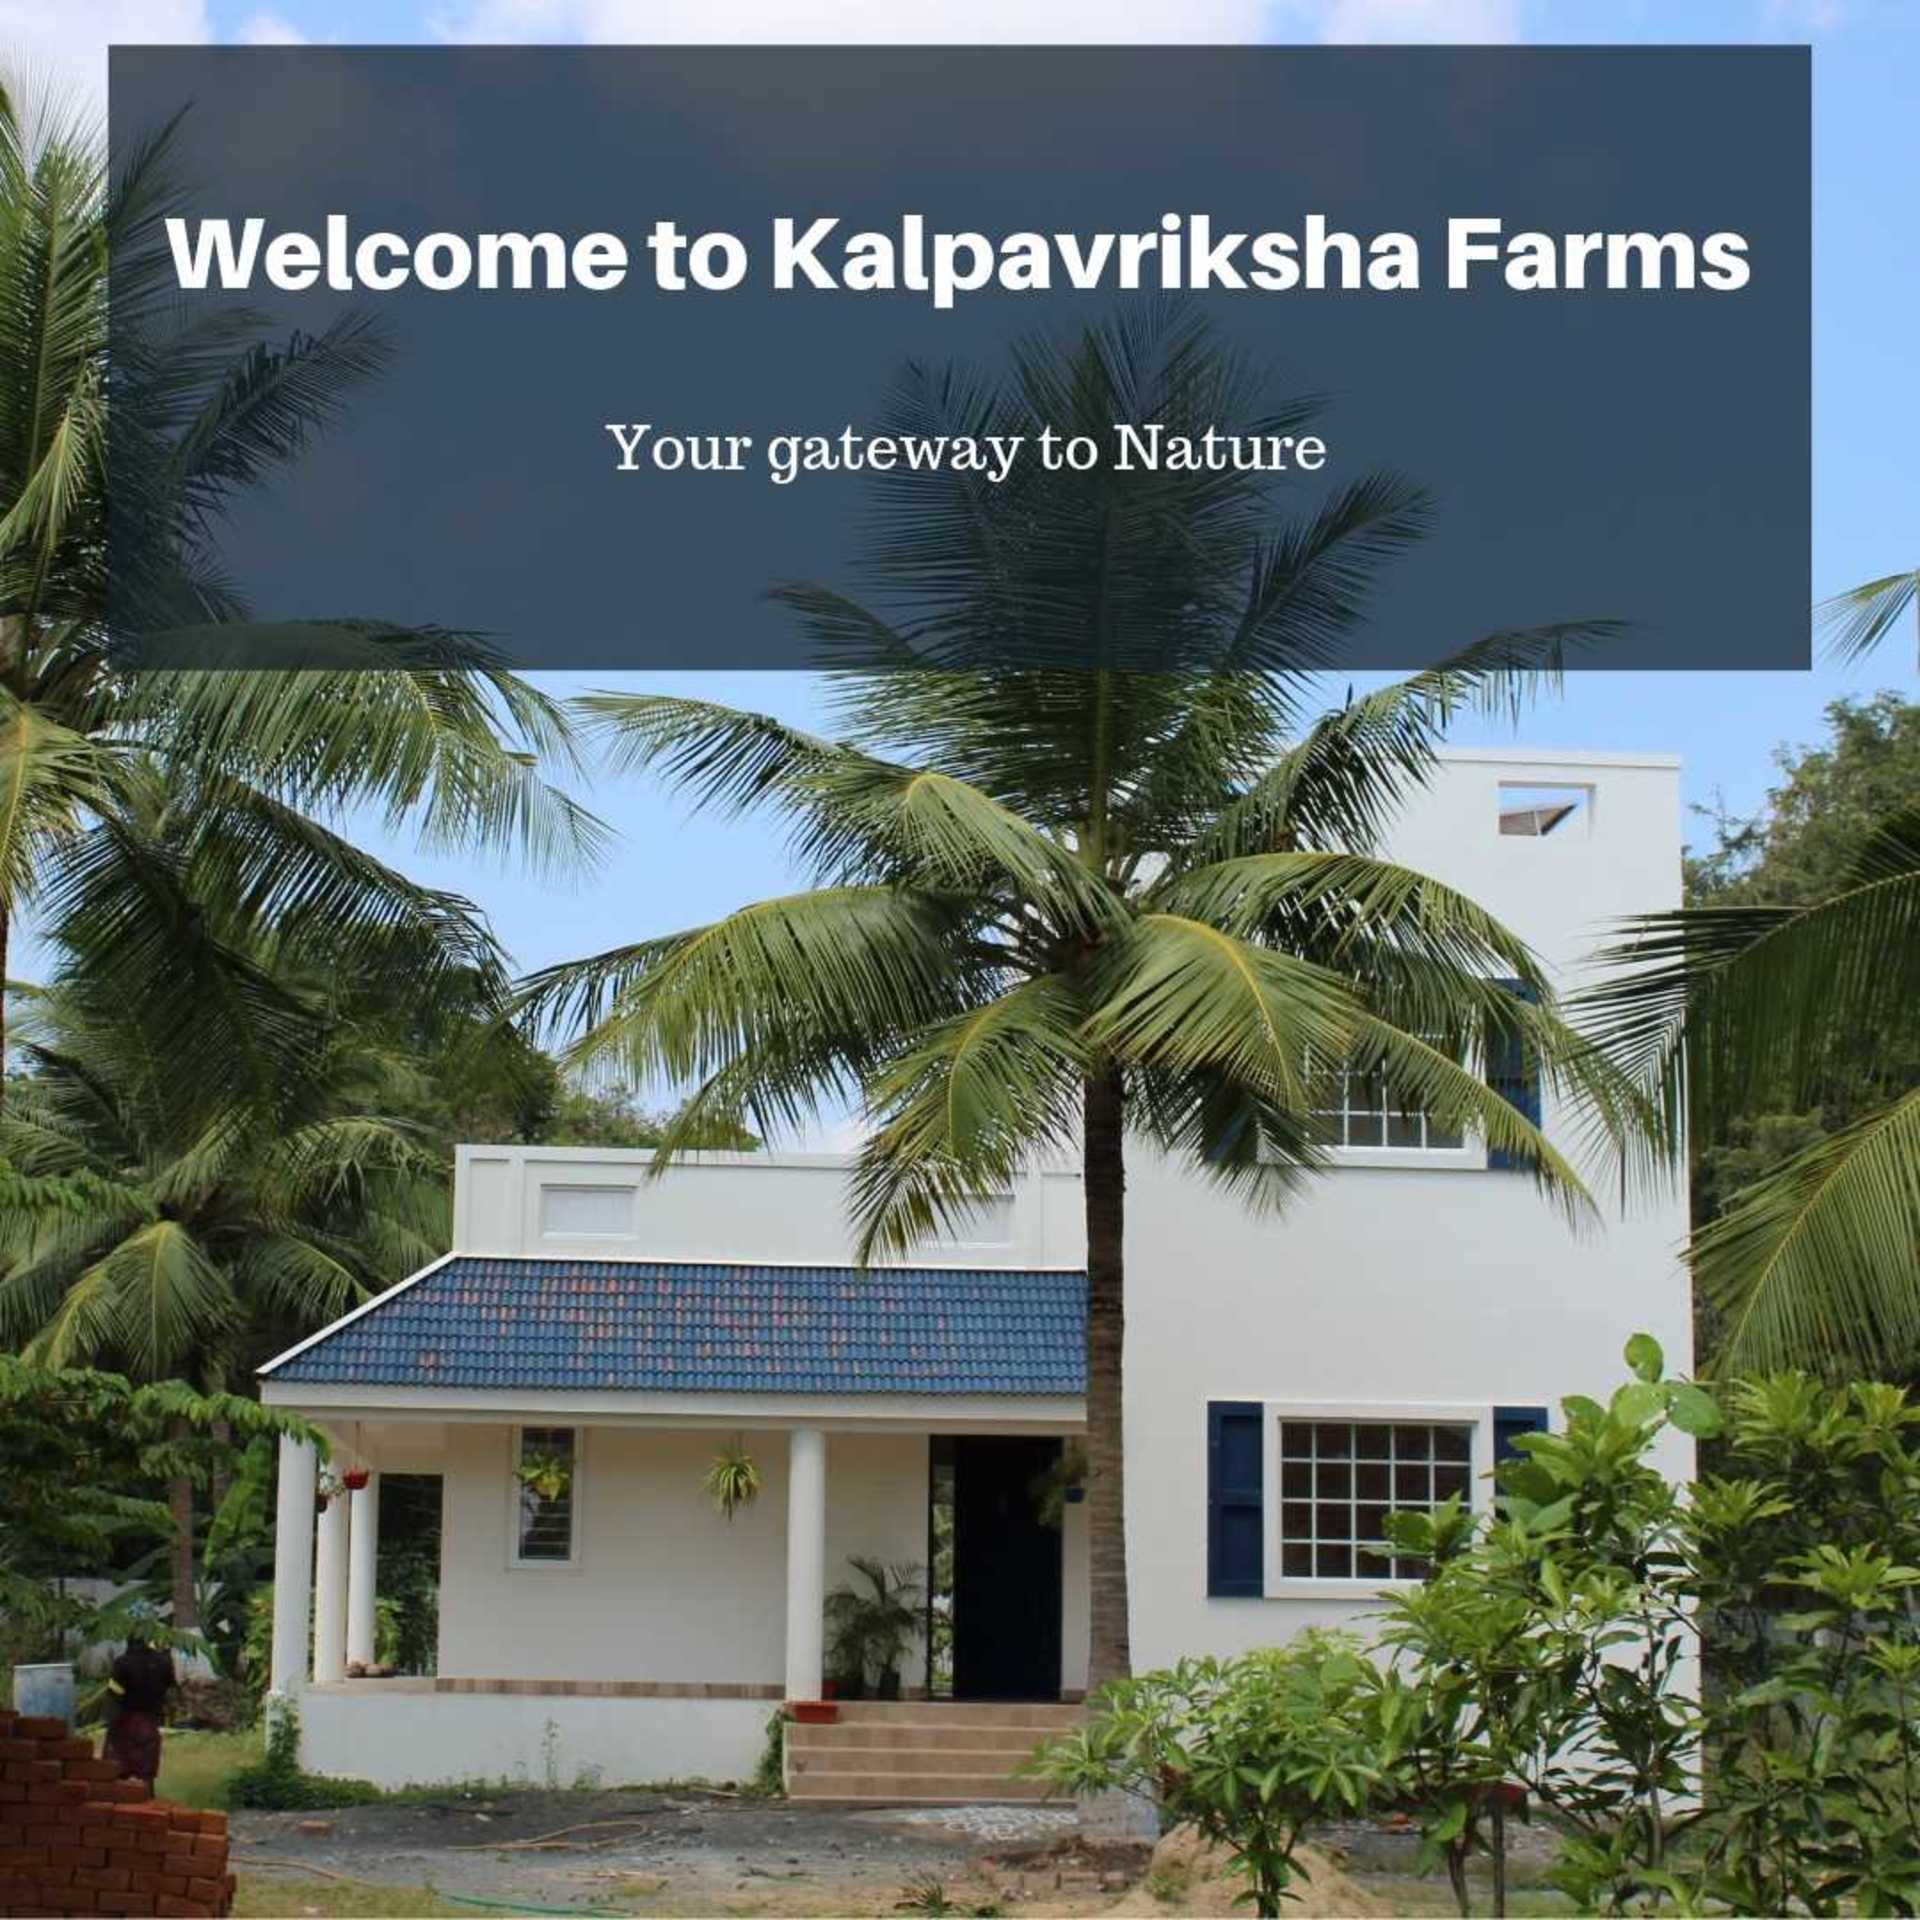 Let's explore Kalpavriksha Farms image